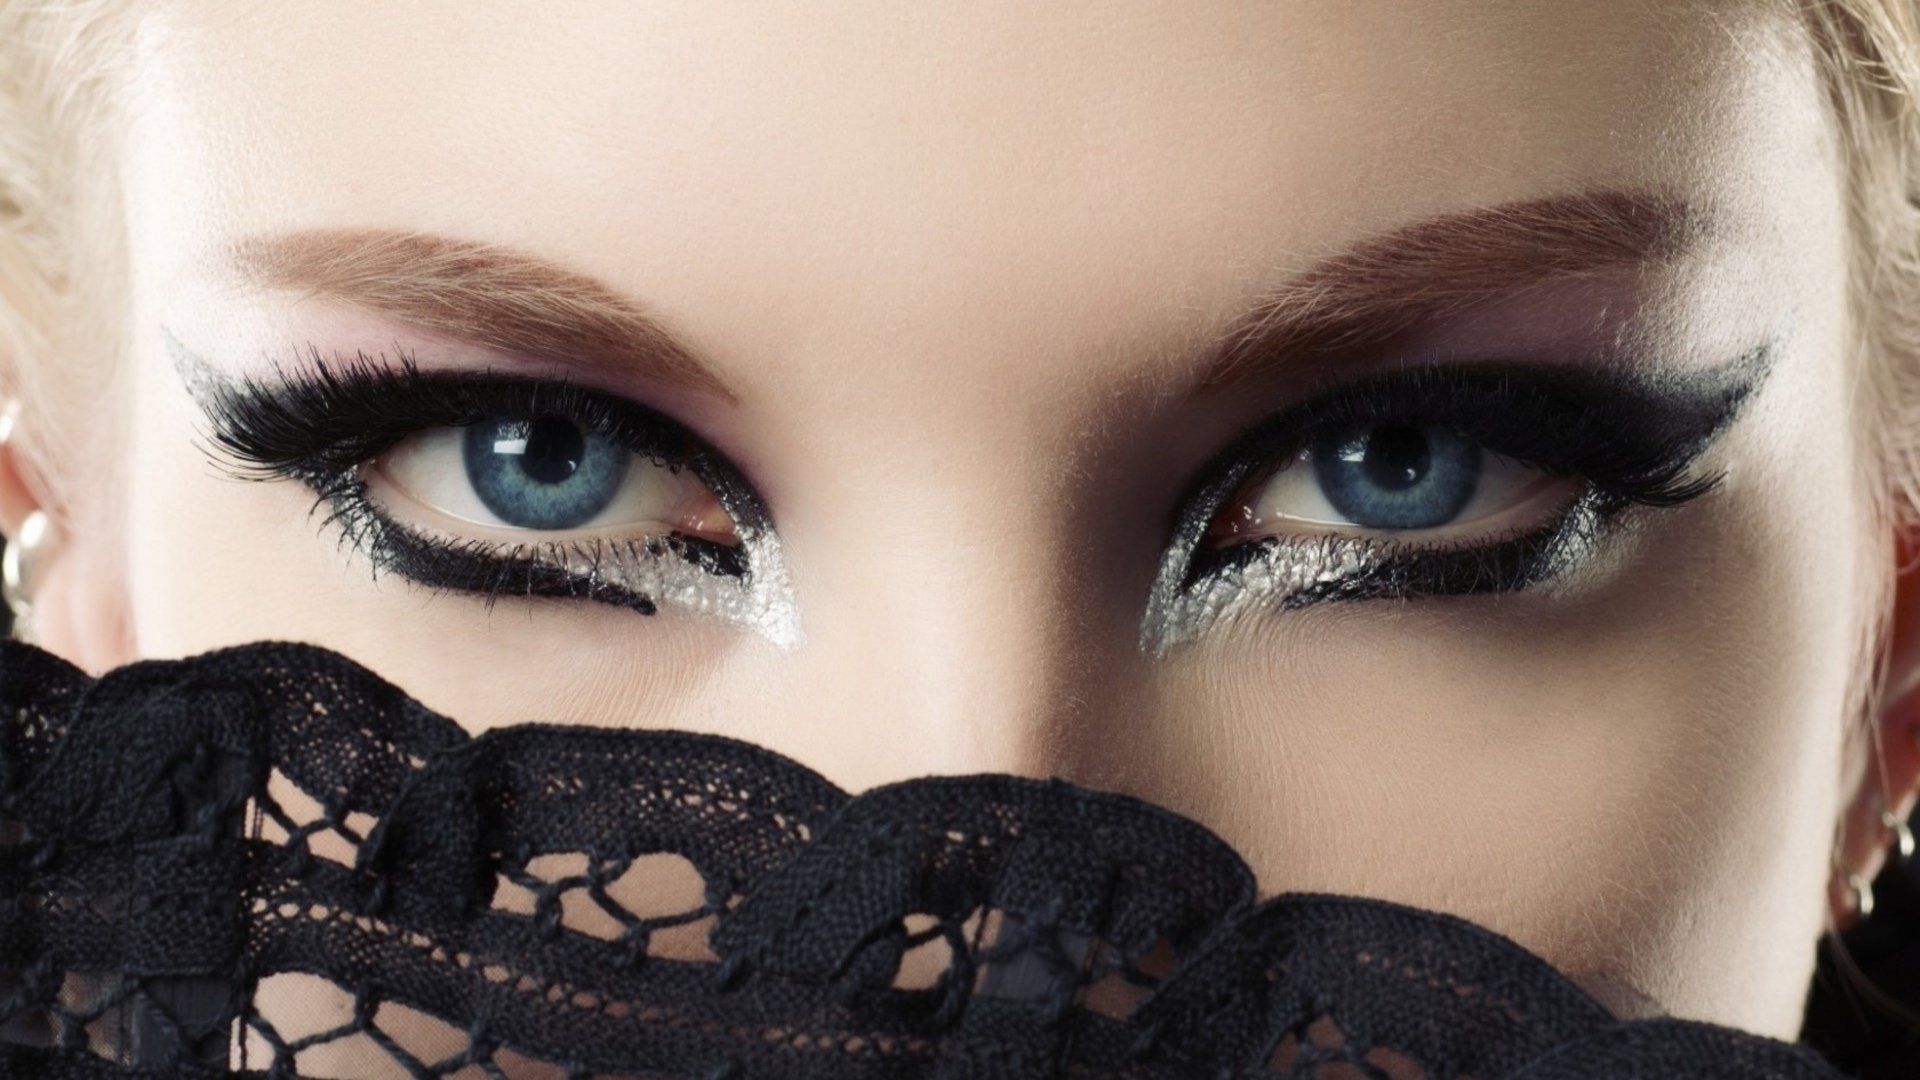 Beautiful Eyes Wallpapers Archives   Wall Paper HD Mobile 1920x1080